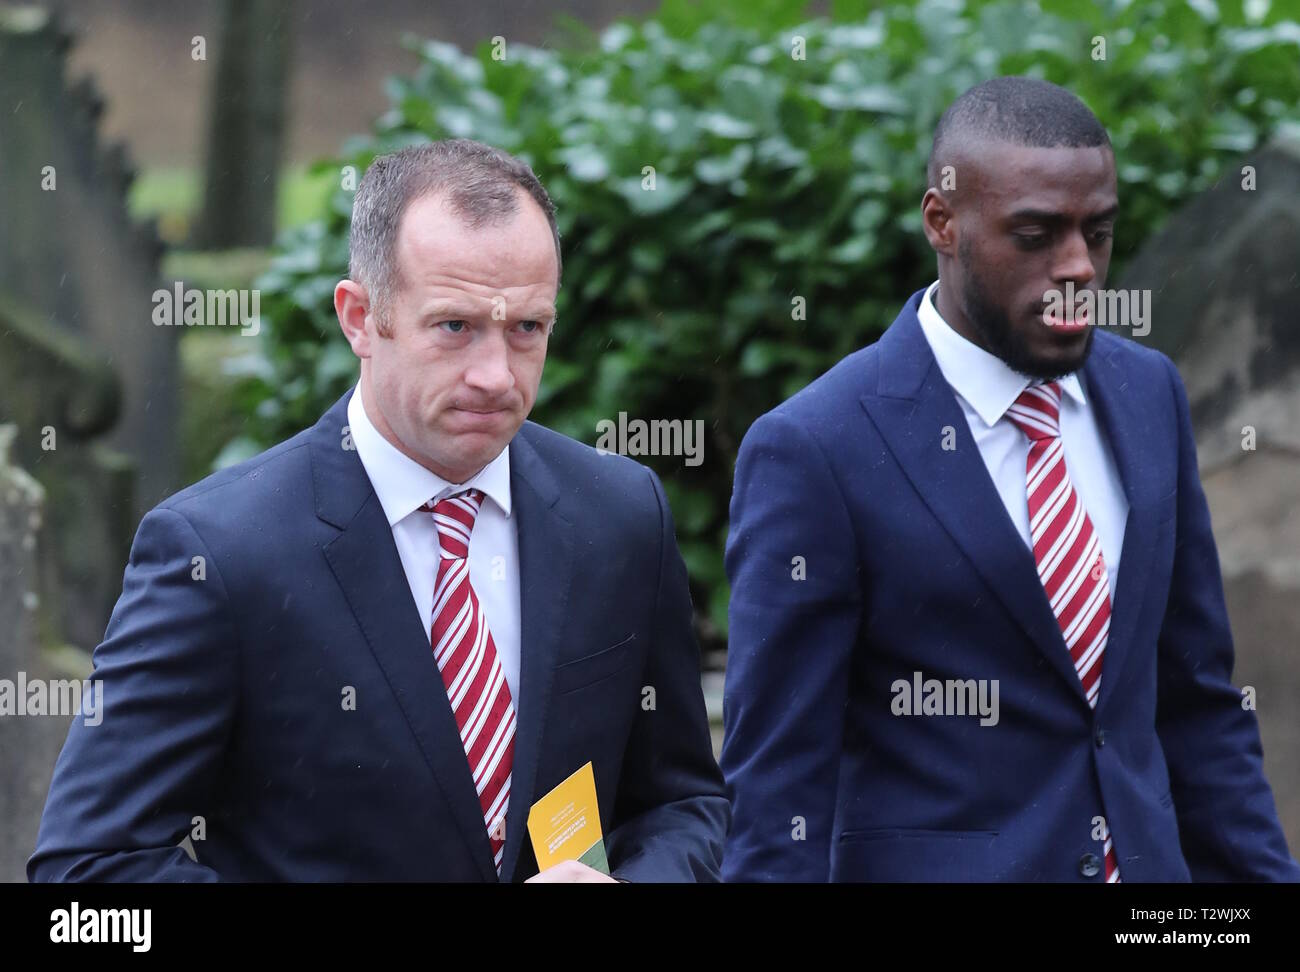 The funeral of England's World Cup winning goalkeeper Gordon Banks at Stoke Minster  Featuring: Charlie Adams, Bruno Martins Indi Where: Stoke-upon-Trent, Staffordshire, United Kingdom When: 04 Mar 2019 Credit: John Rainford/WENN - Stock Image